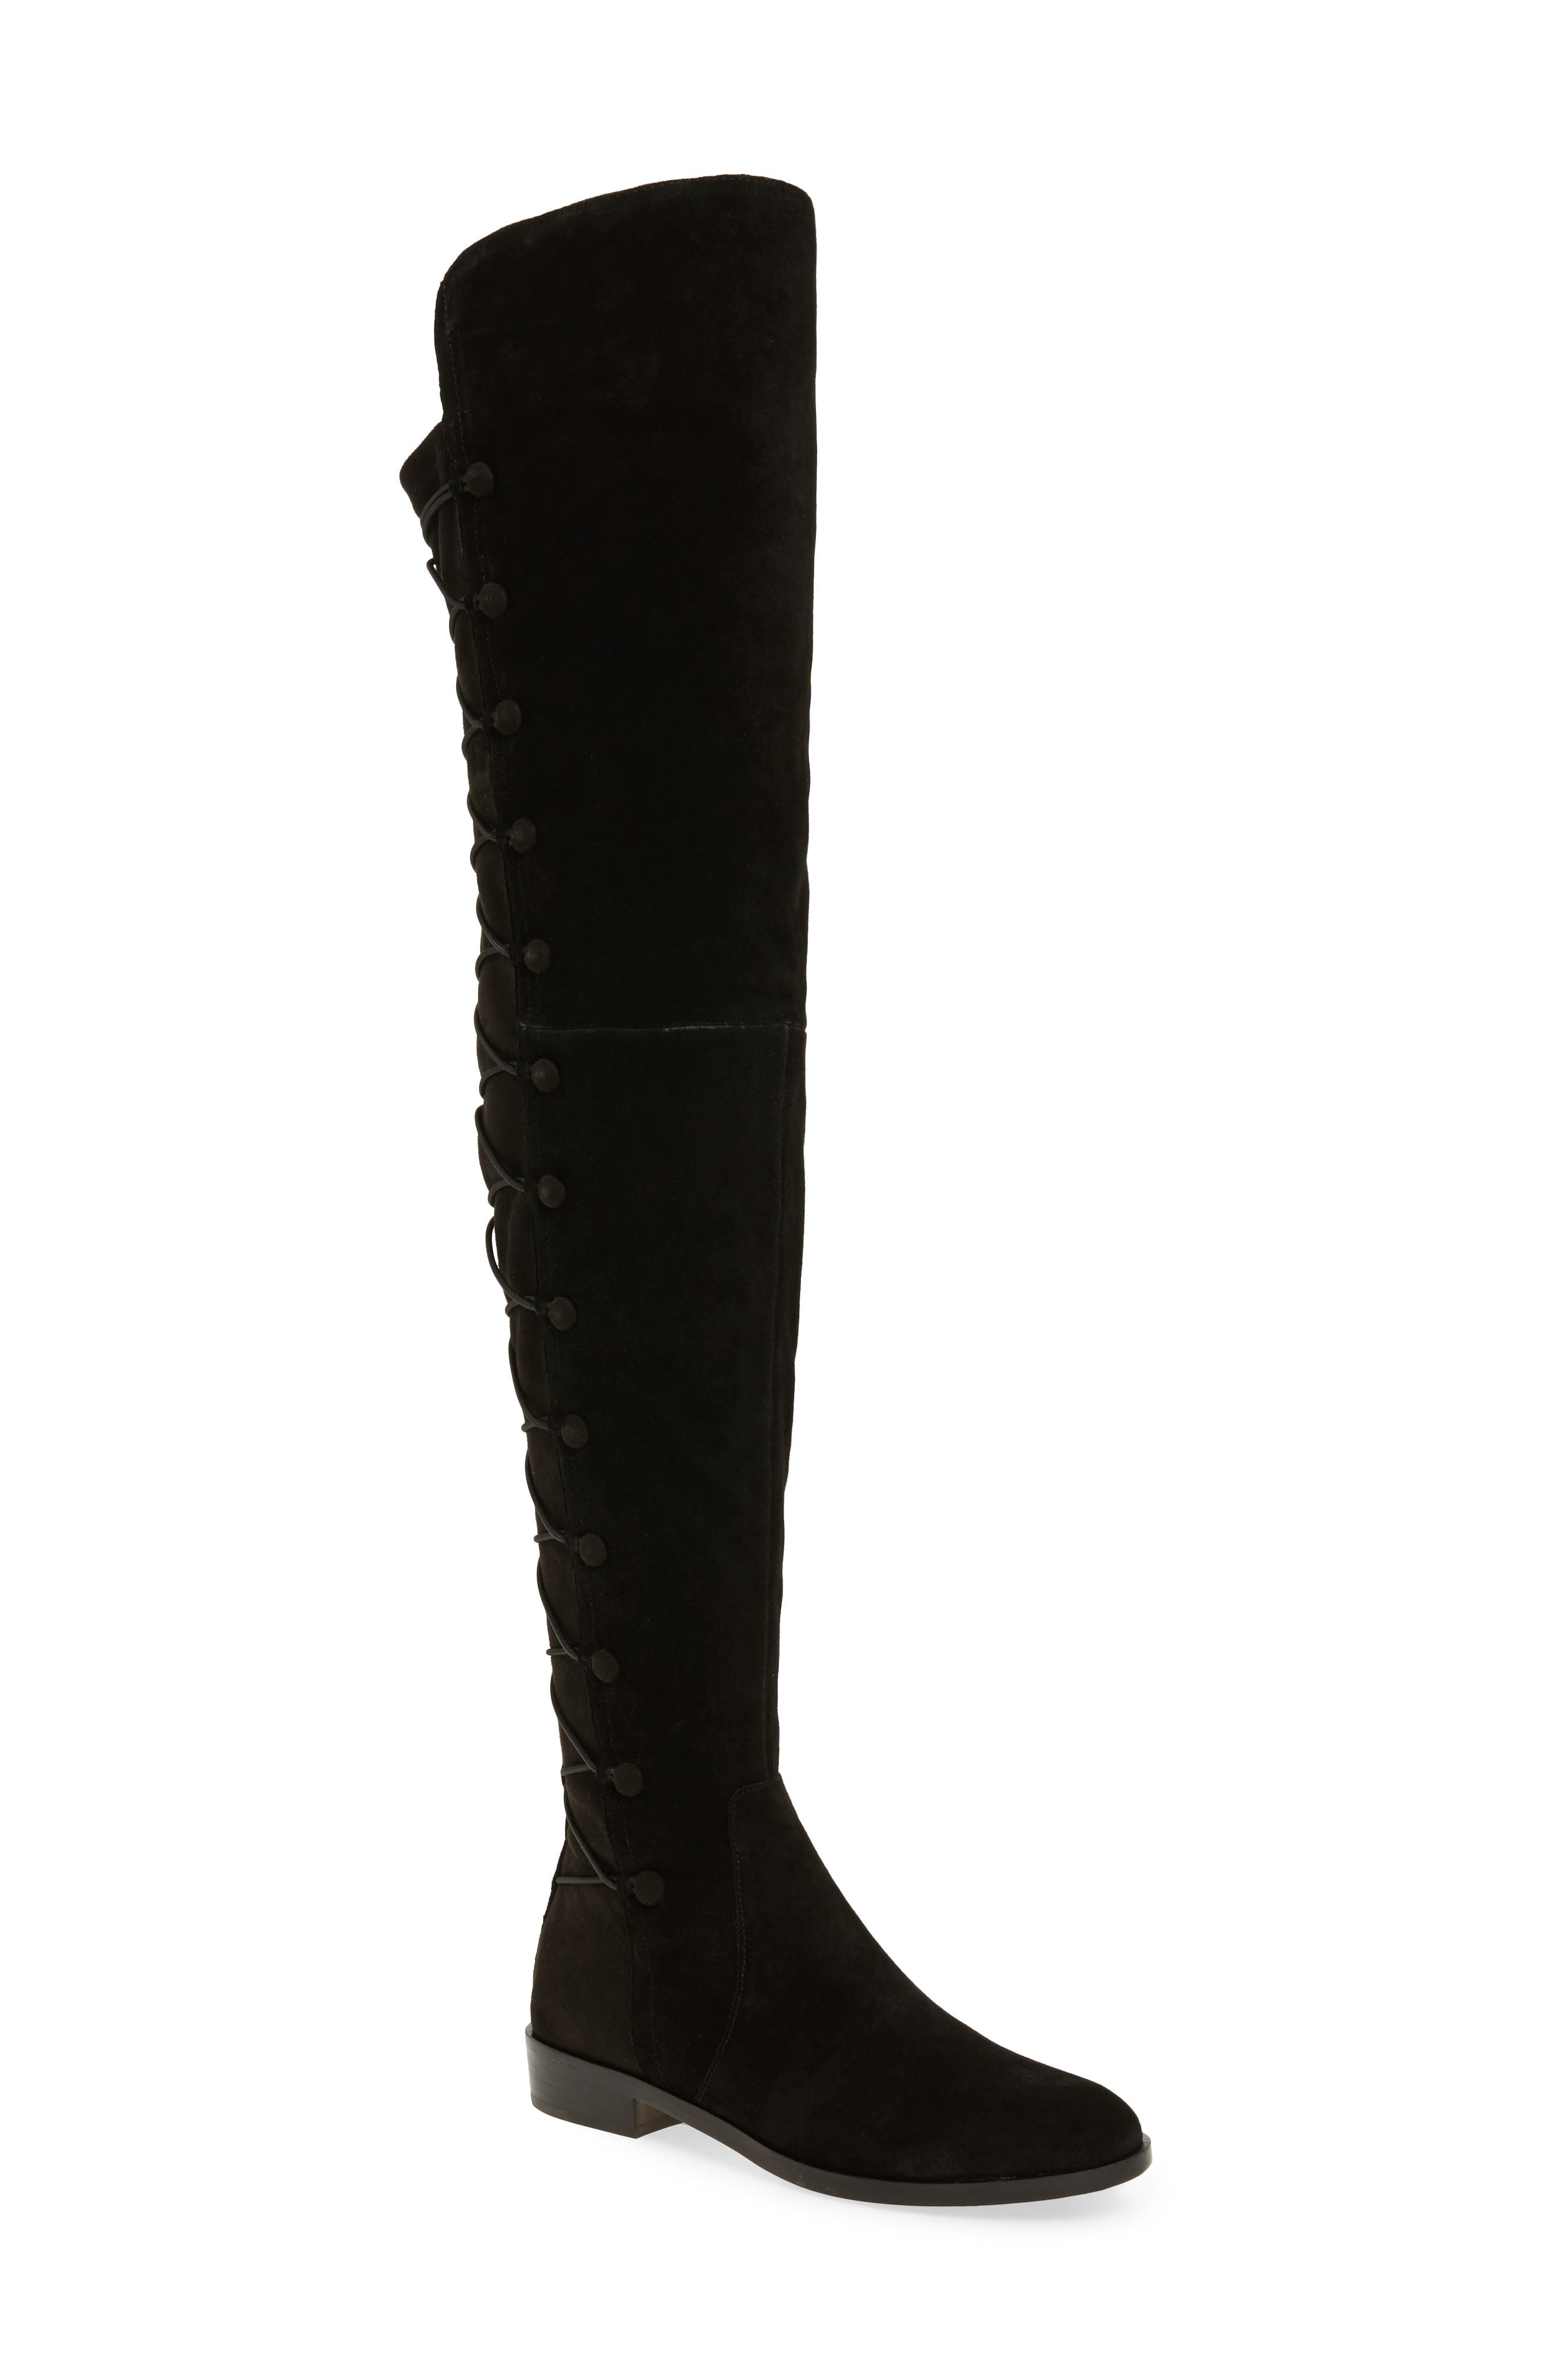 Croatia Over the Knee Boot,                         Main,                         color, 002